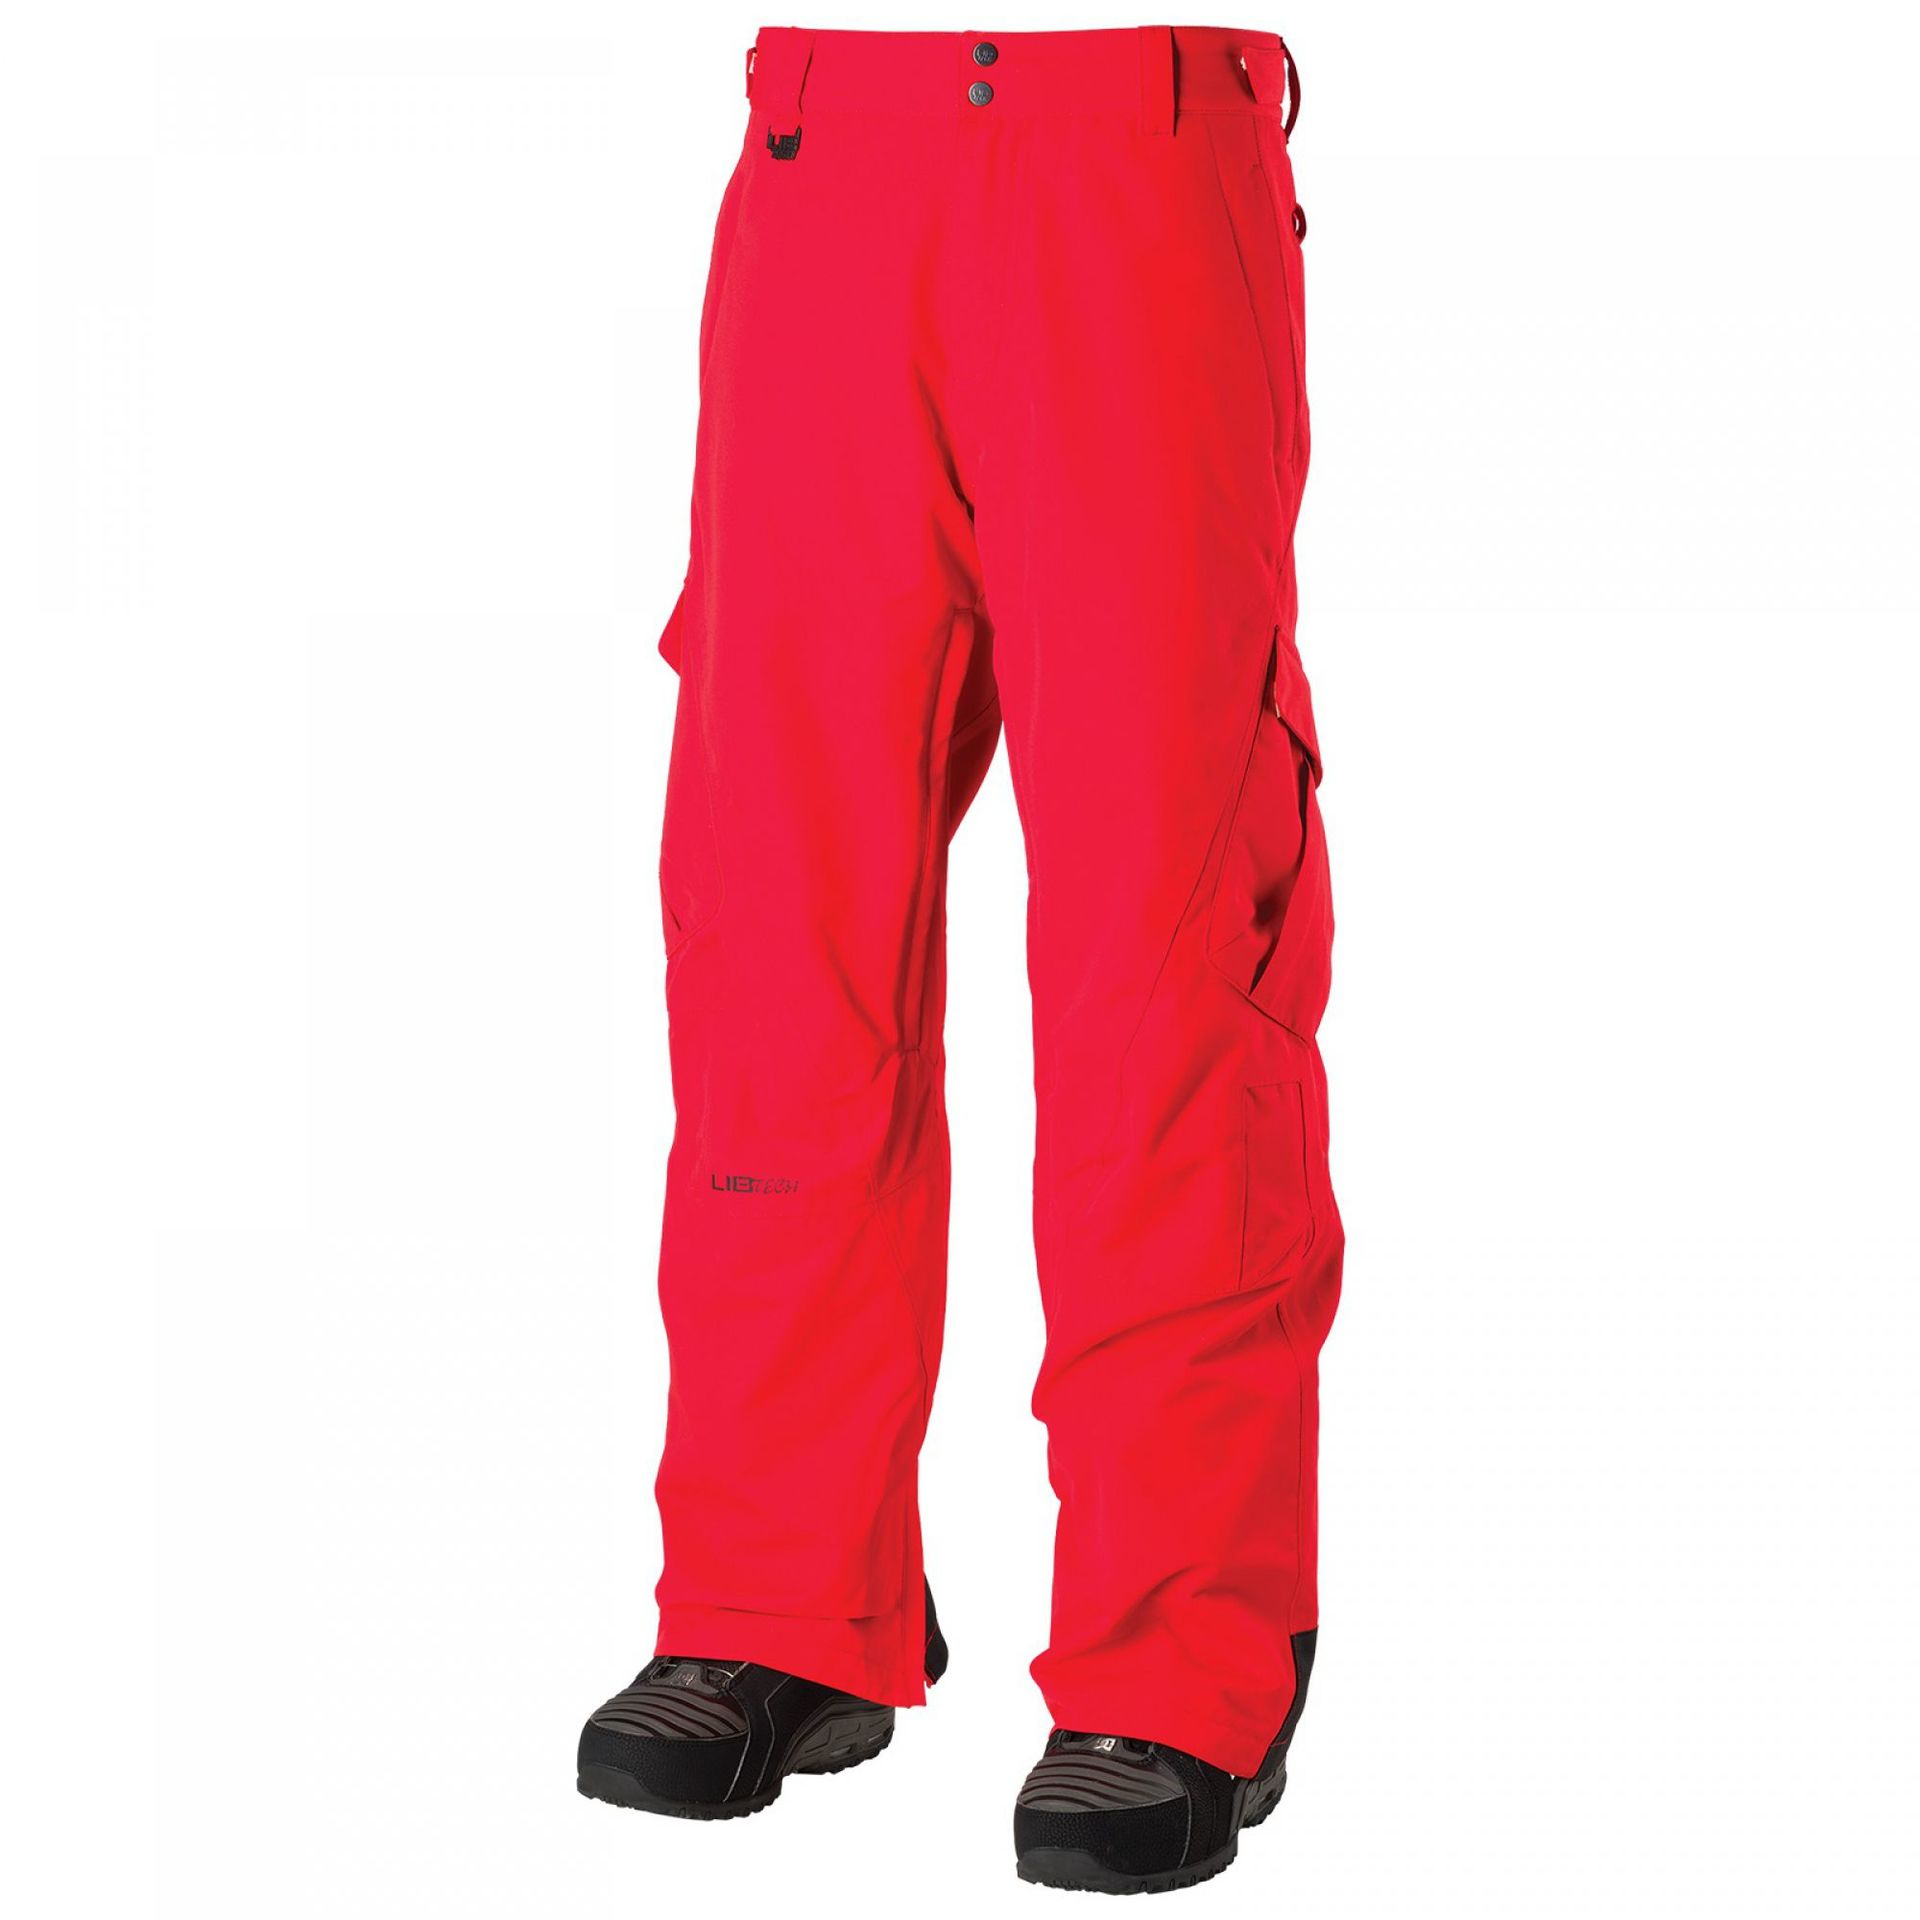 SPODNIE  LIB TECH GO CAR PANT RED